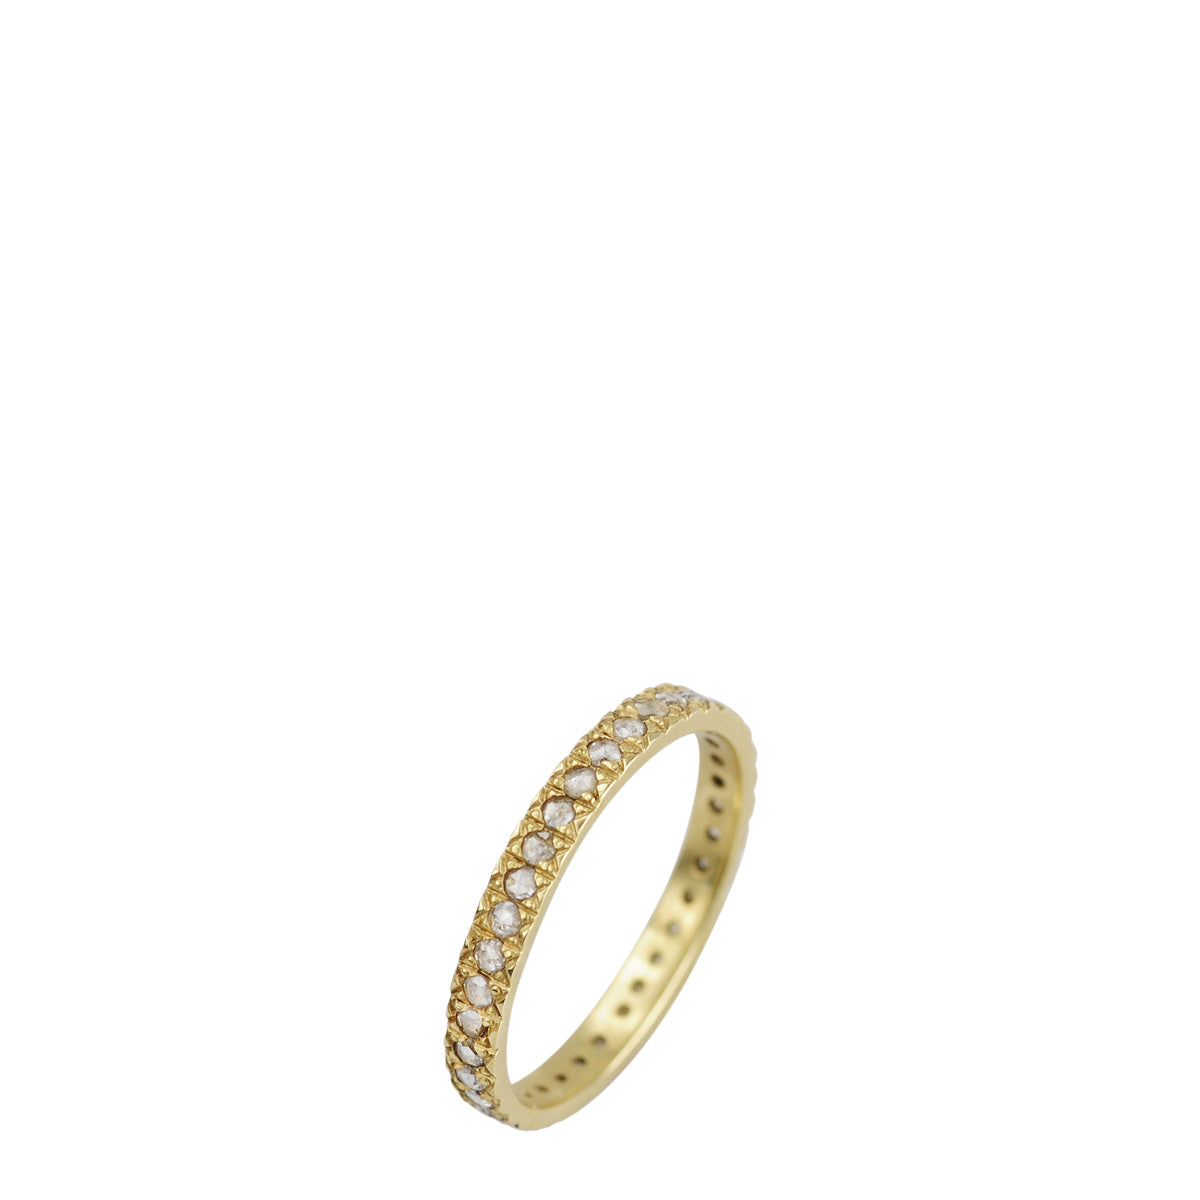 18K Gold 2.5mm Band with 1.5mm Indian Diamonds